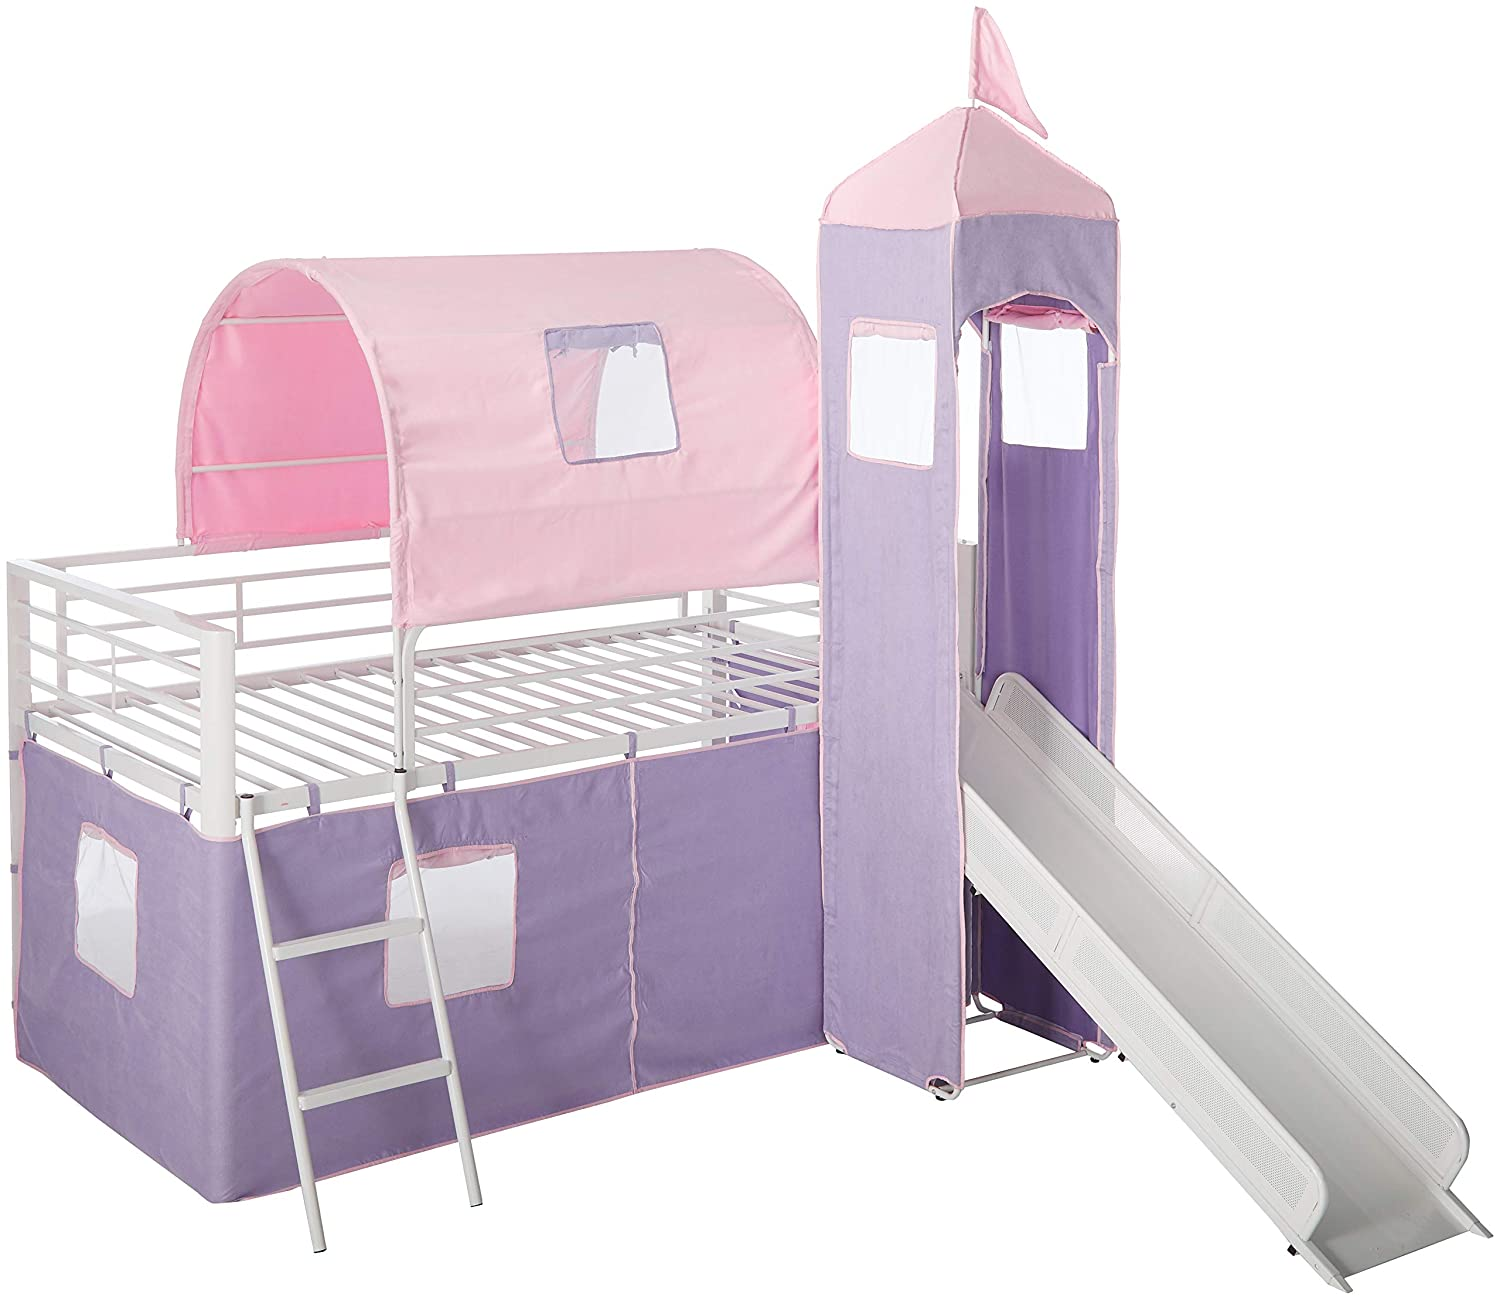 Top 7 Best Bunk Beds for Toddlers Reviews in 2021 14